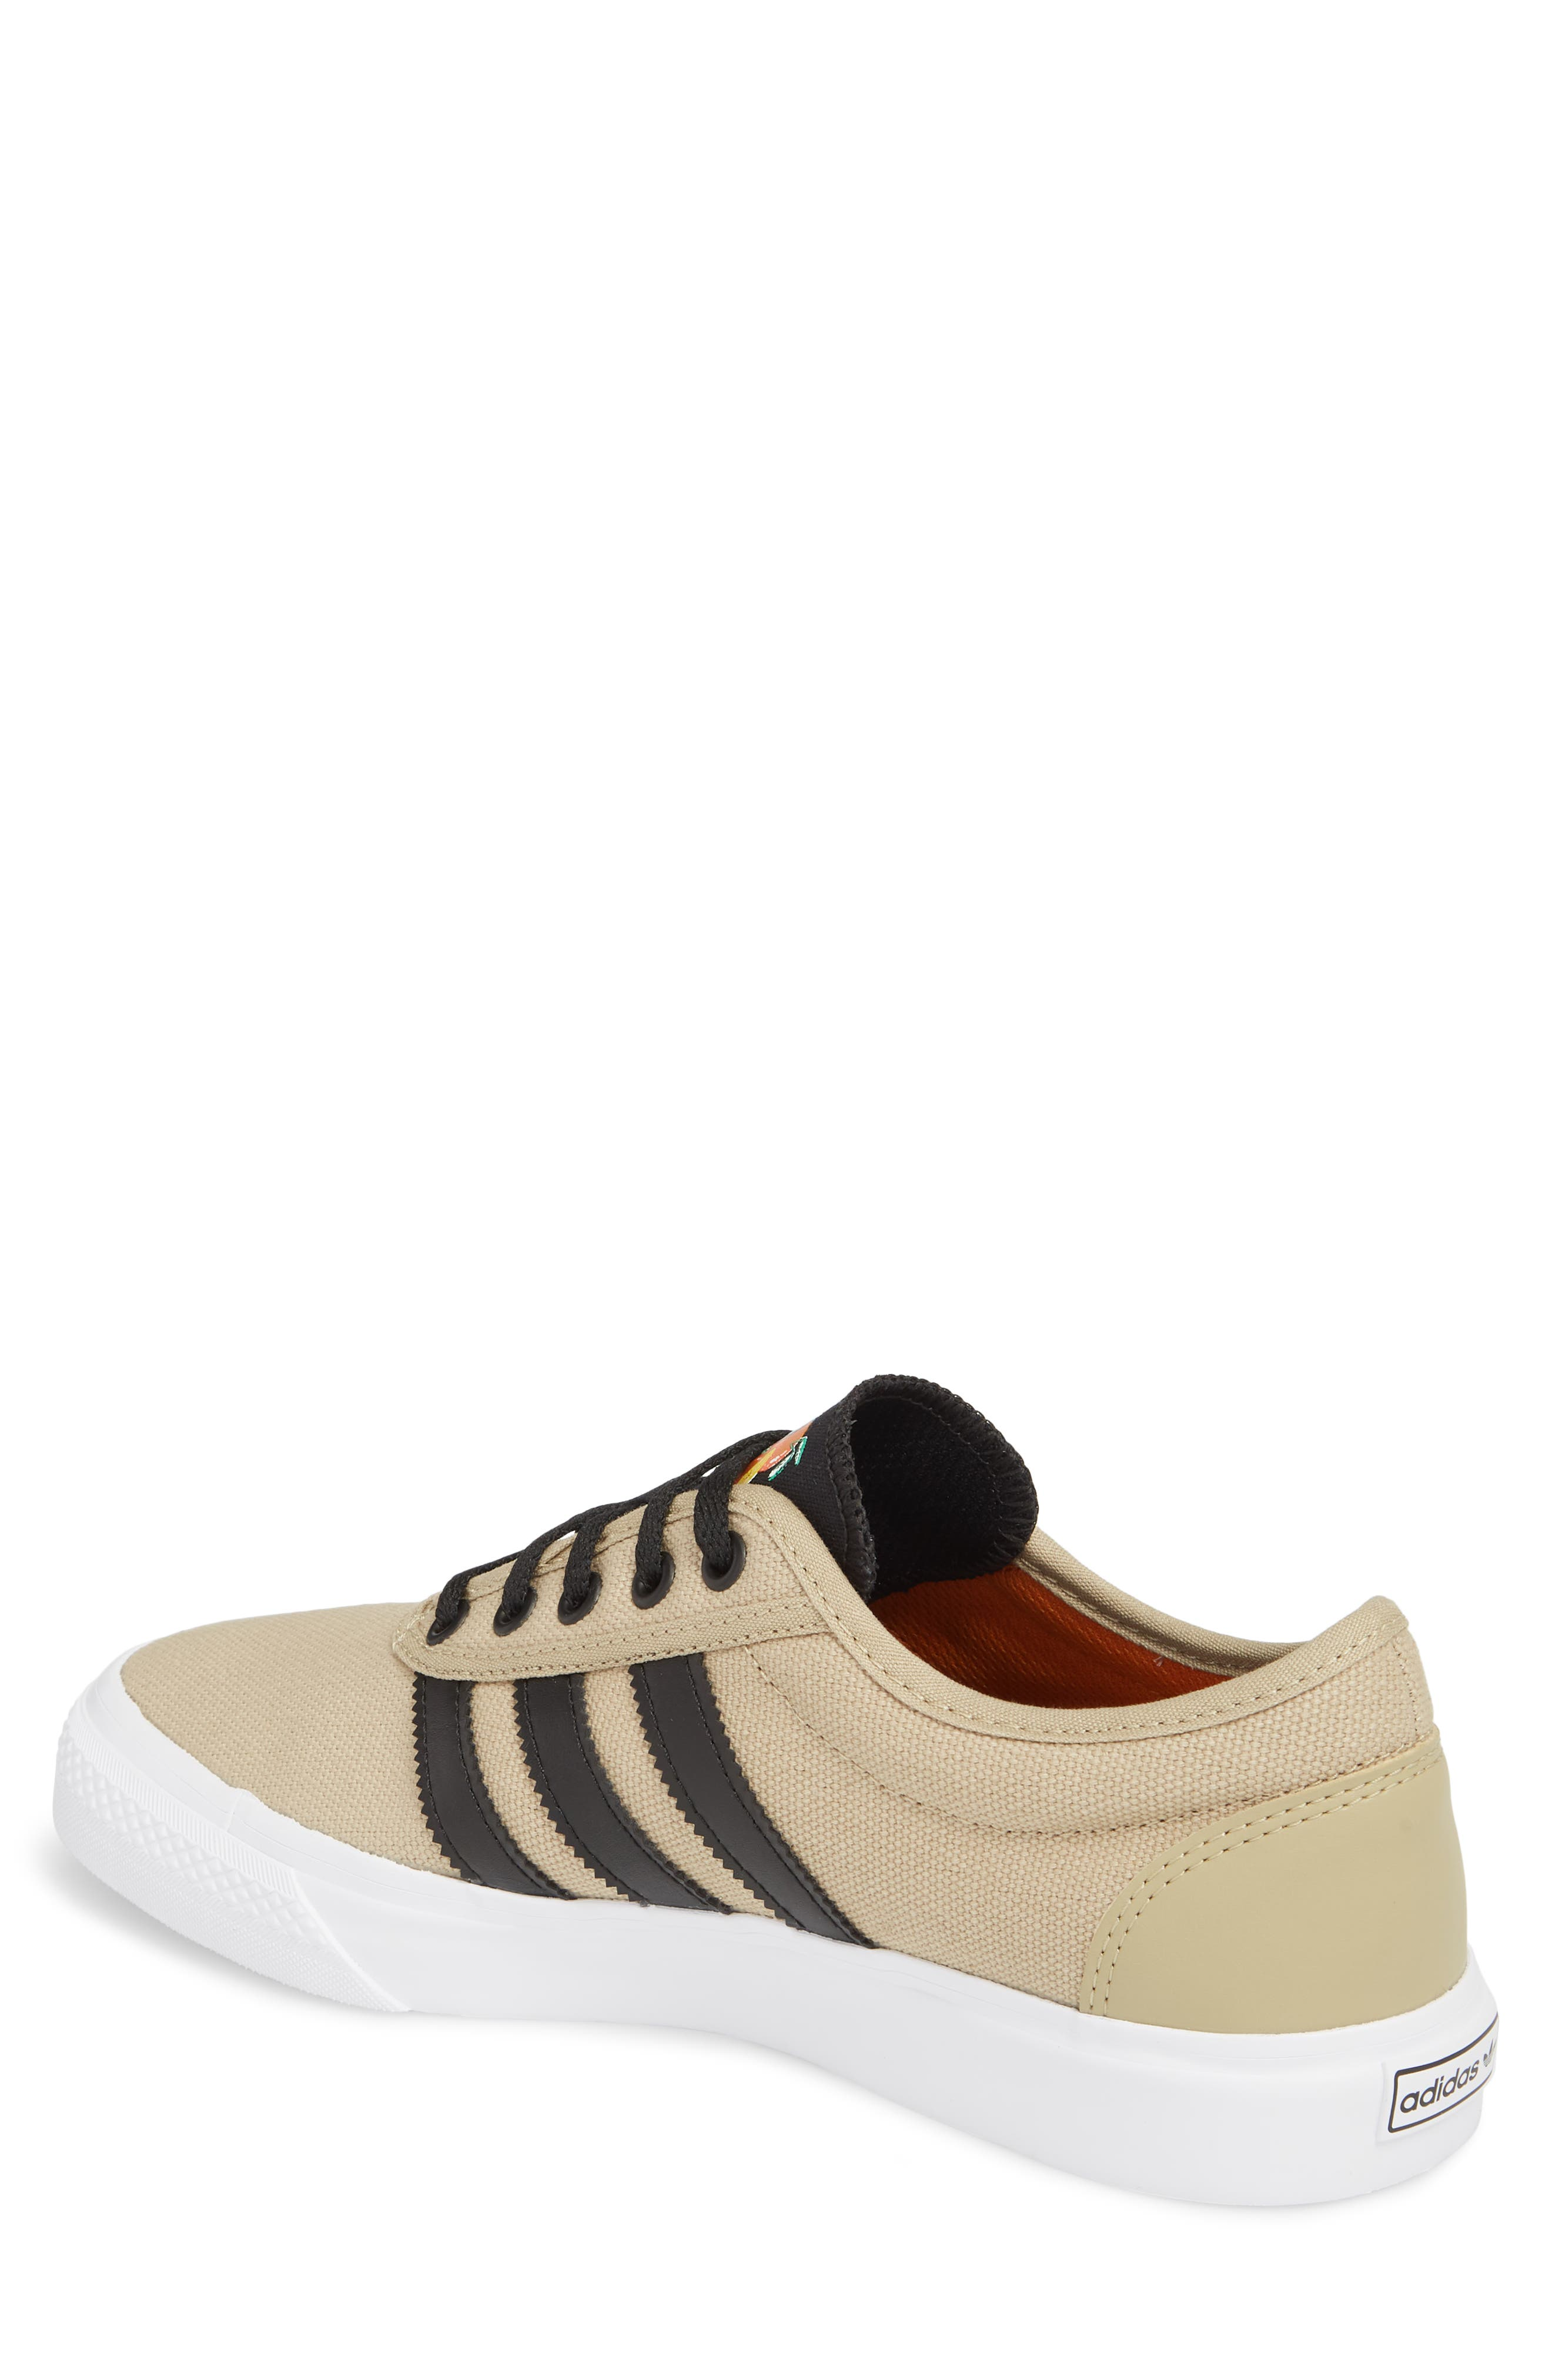 Adiease Premiere Skateboarding Sneaker,                             Alternate thumbnail 2, color,                             Gold/ Core Black/ White